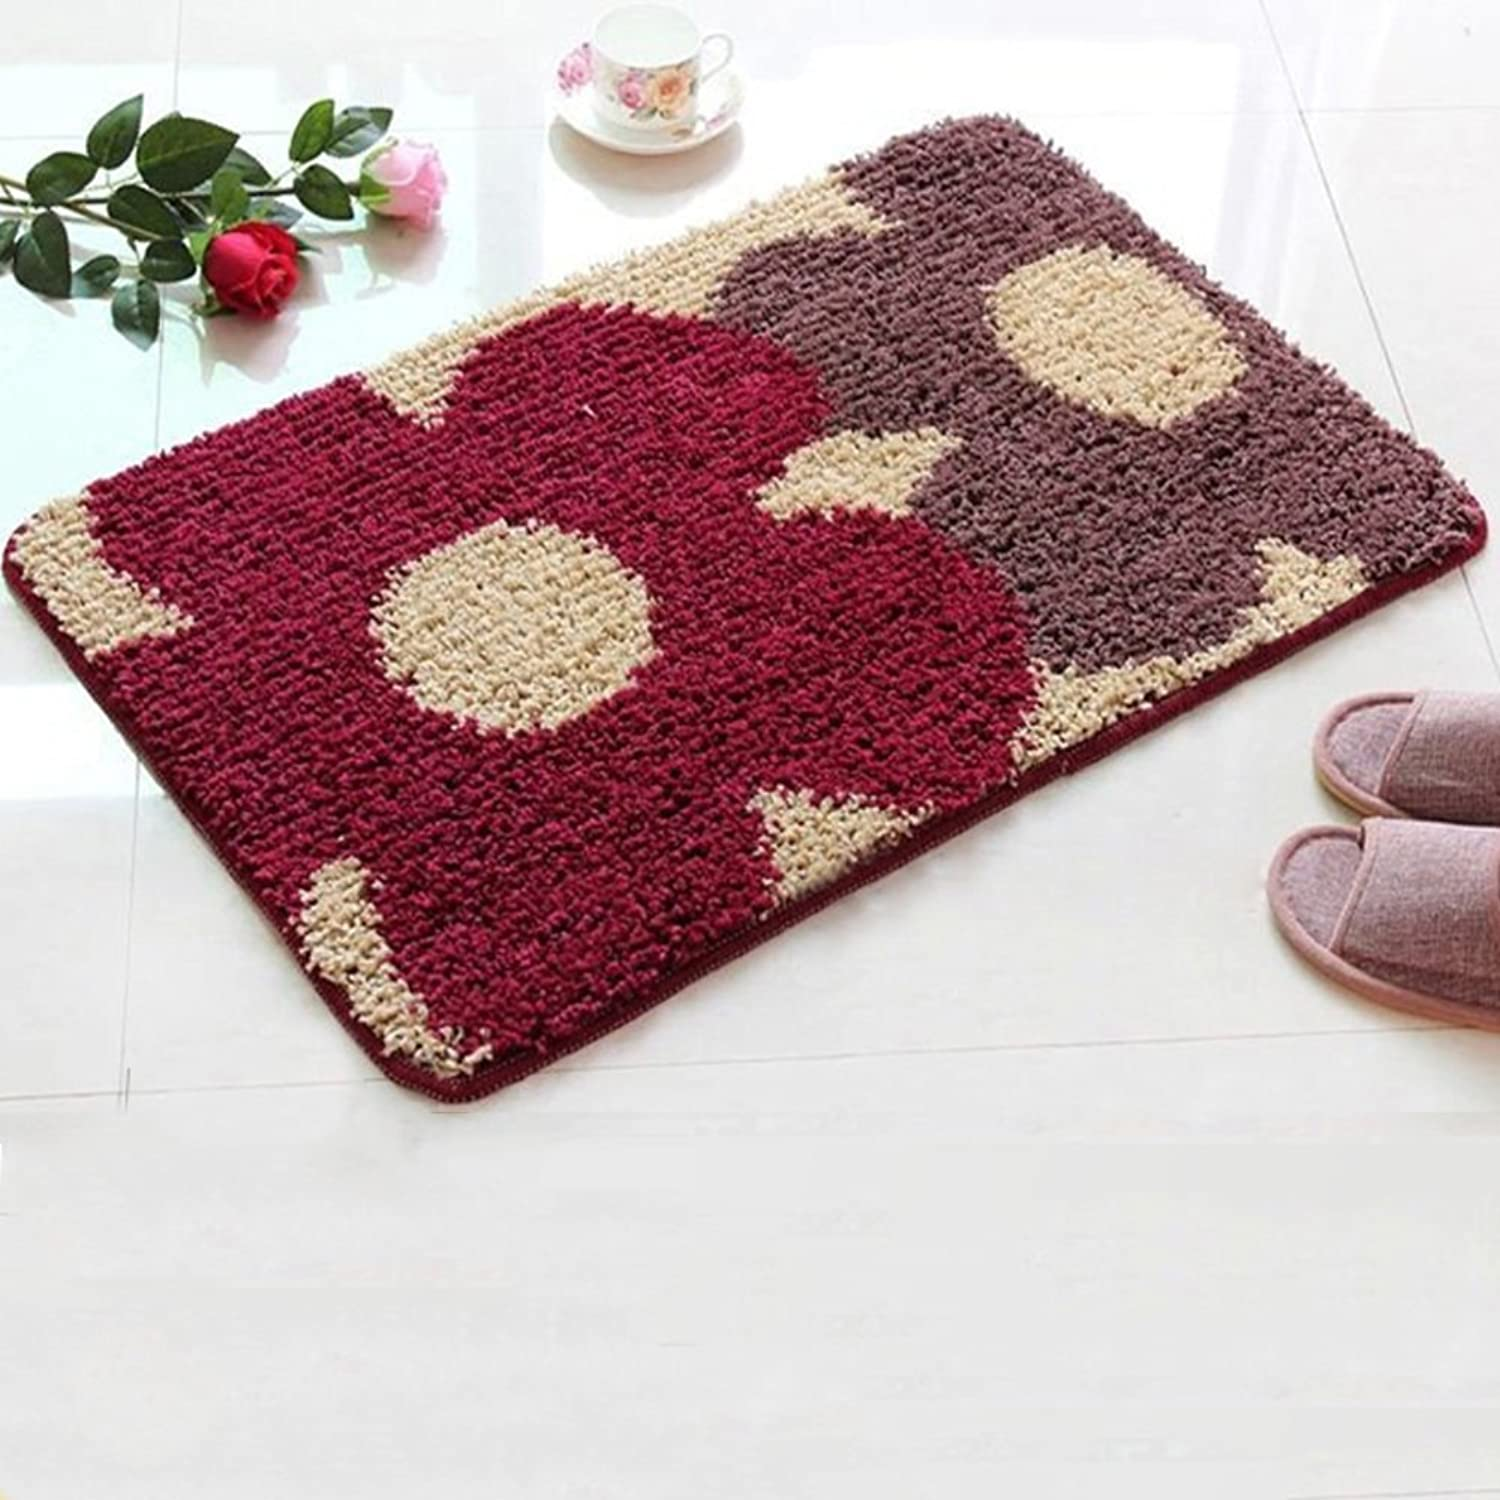 GUOSHIJITUAN Anti Slip Modern Carpet,Doormats Foot Pad for Bedroom Kitchen Hall Rugs for Bathroom Floor-C 120x140cm(47x55inch)